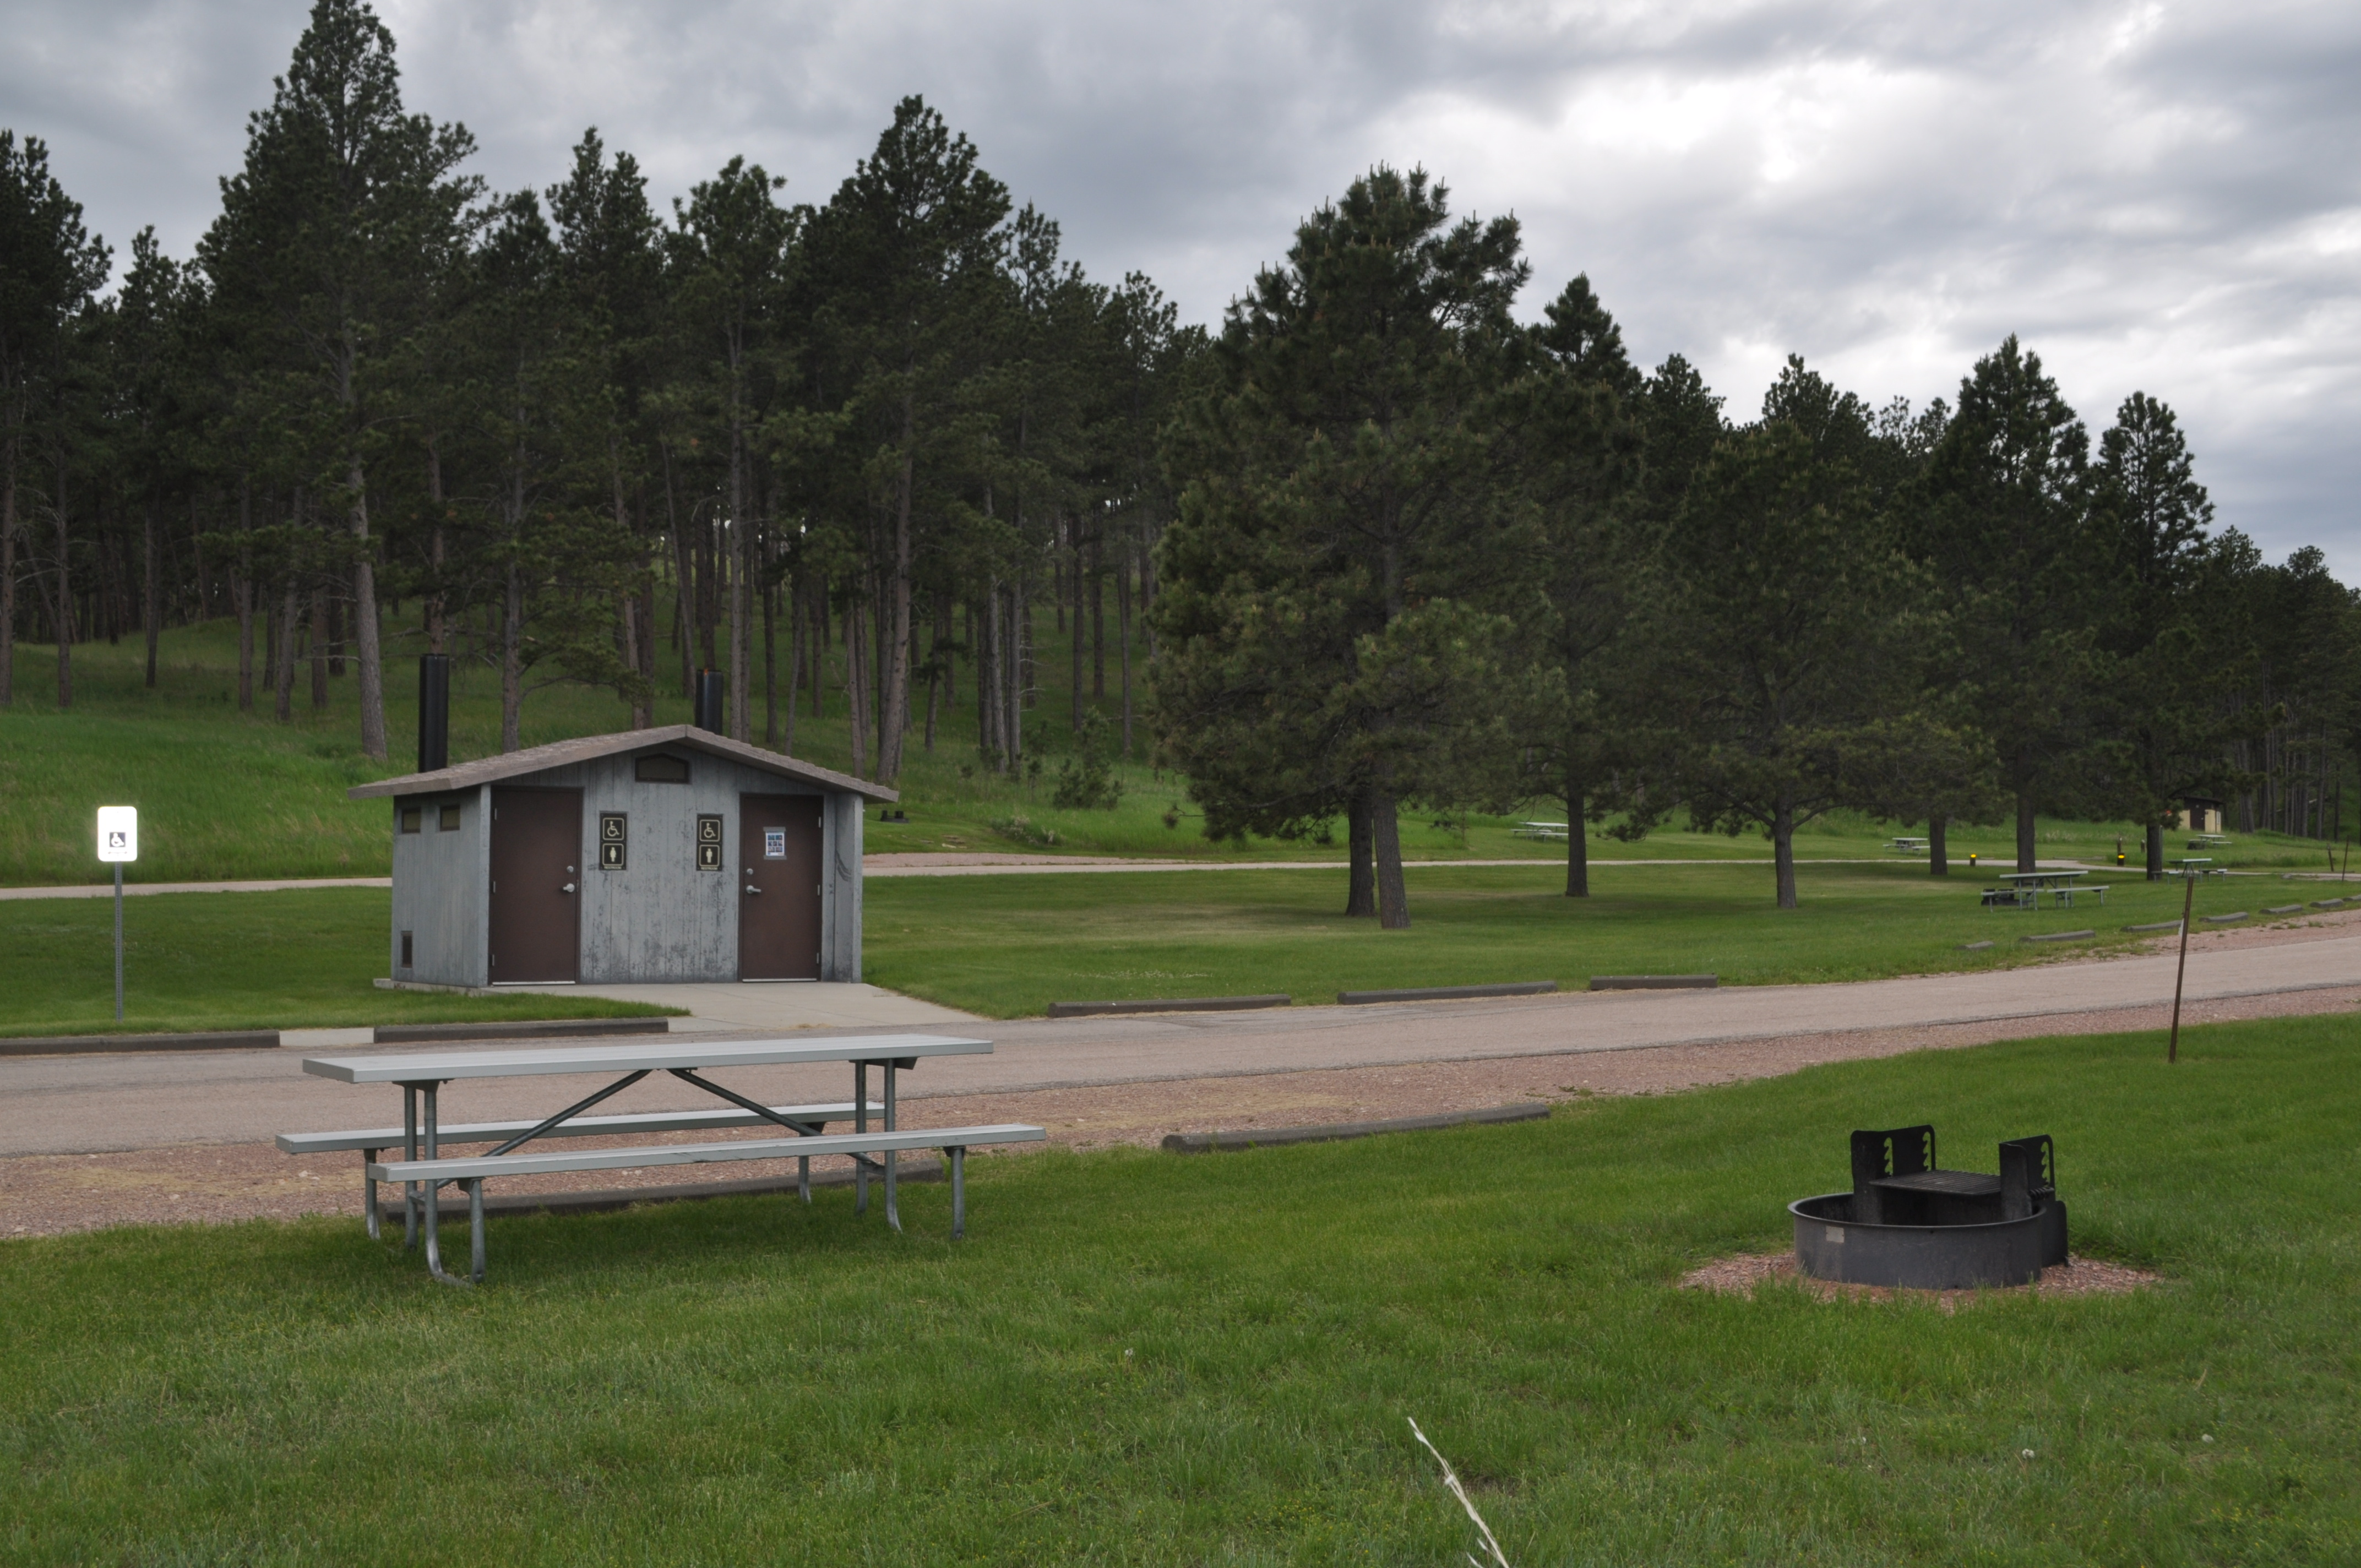 Picnic table on green grass near a fire grate with a vault toilet nearby. There is a slight hill in the background covered with ponderosa pine trees.